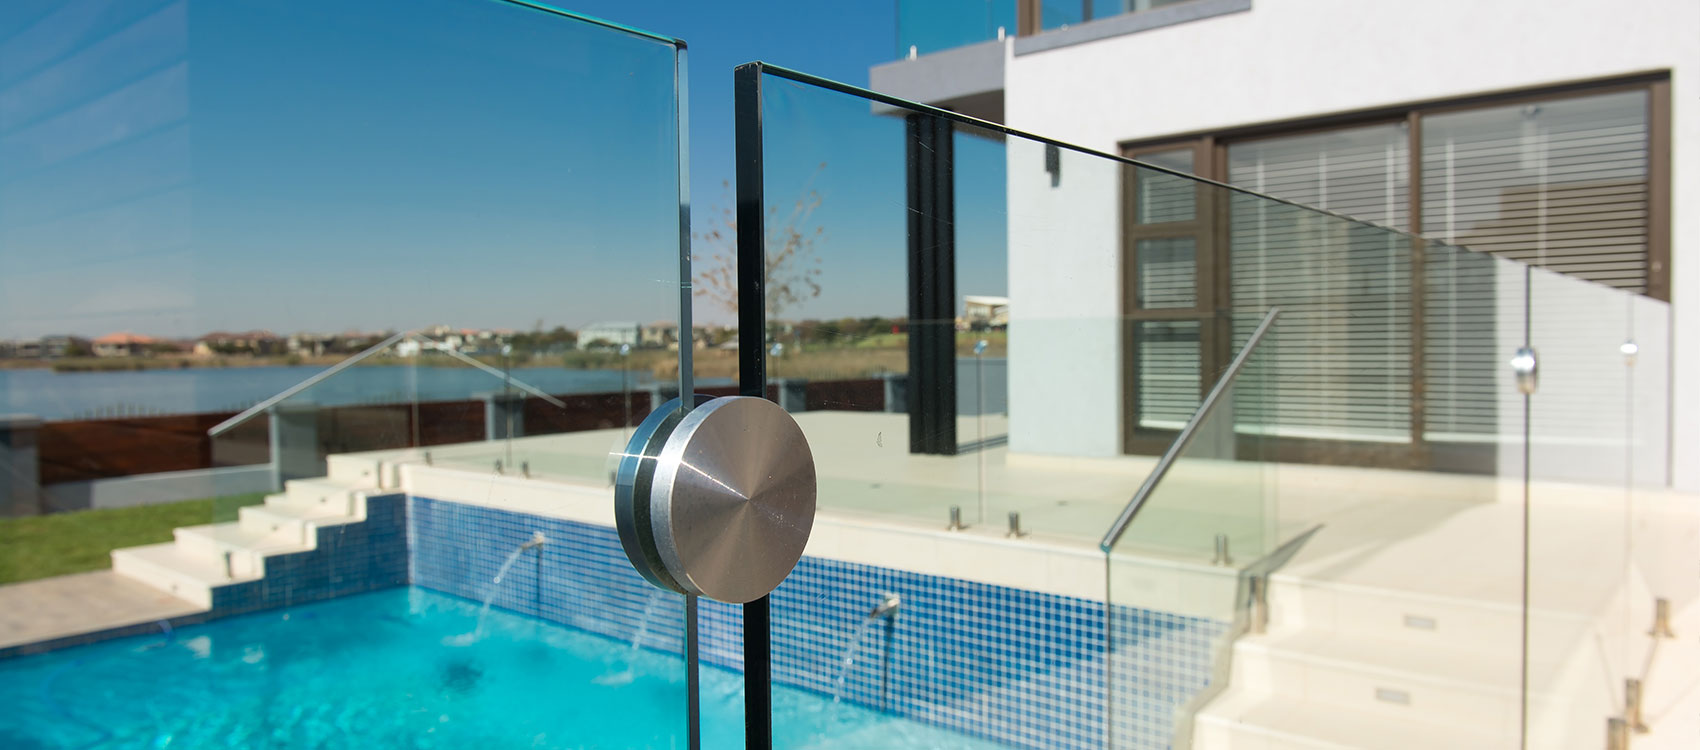 Pool Enclosures Aluminium Shopfitters in Gauteng 3